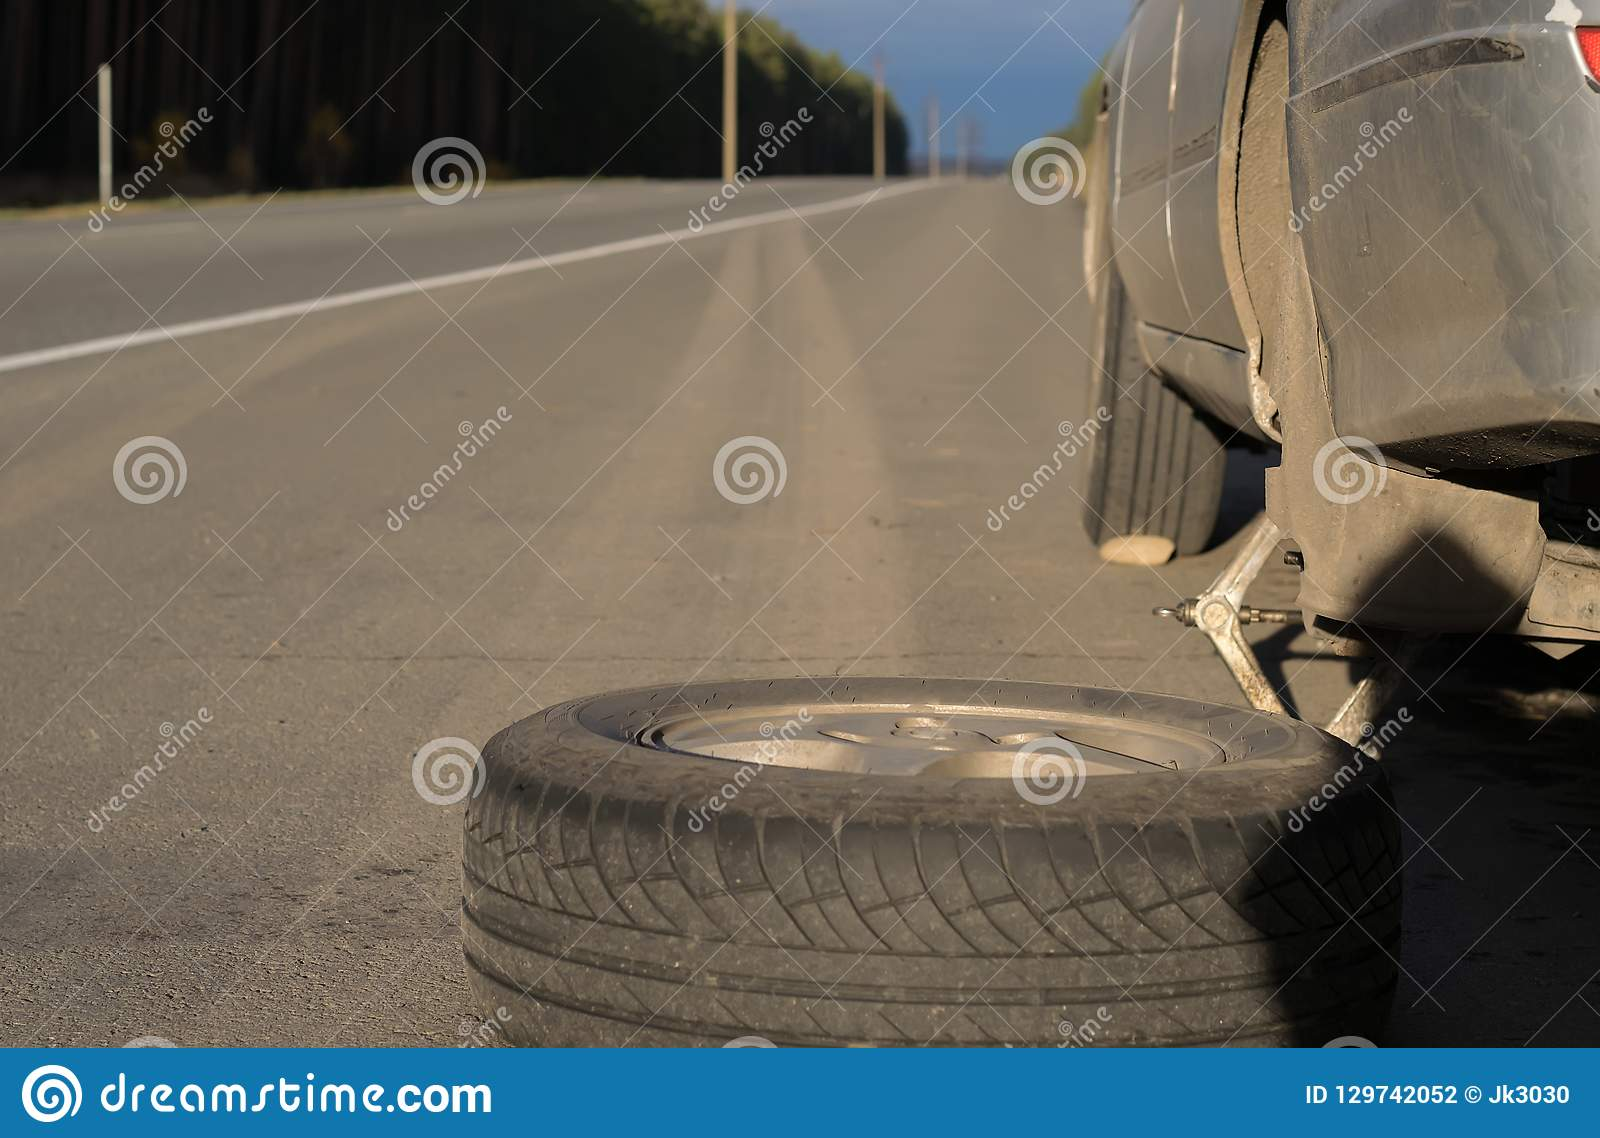 Spare wheel lying near the car. The car is mounted on the Jack